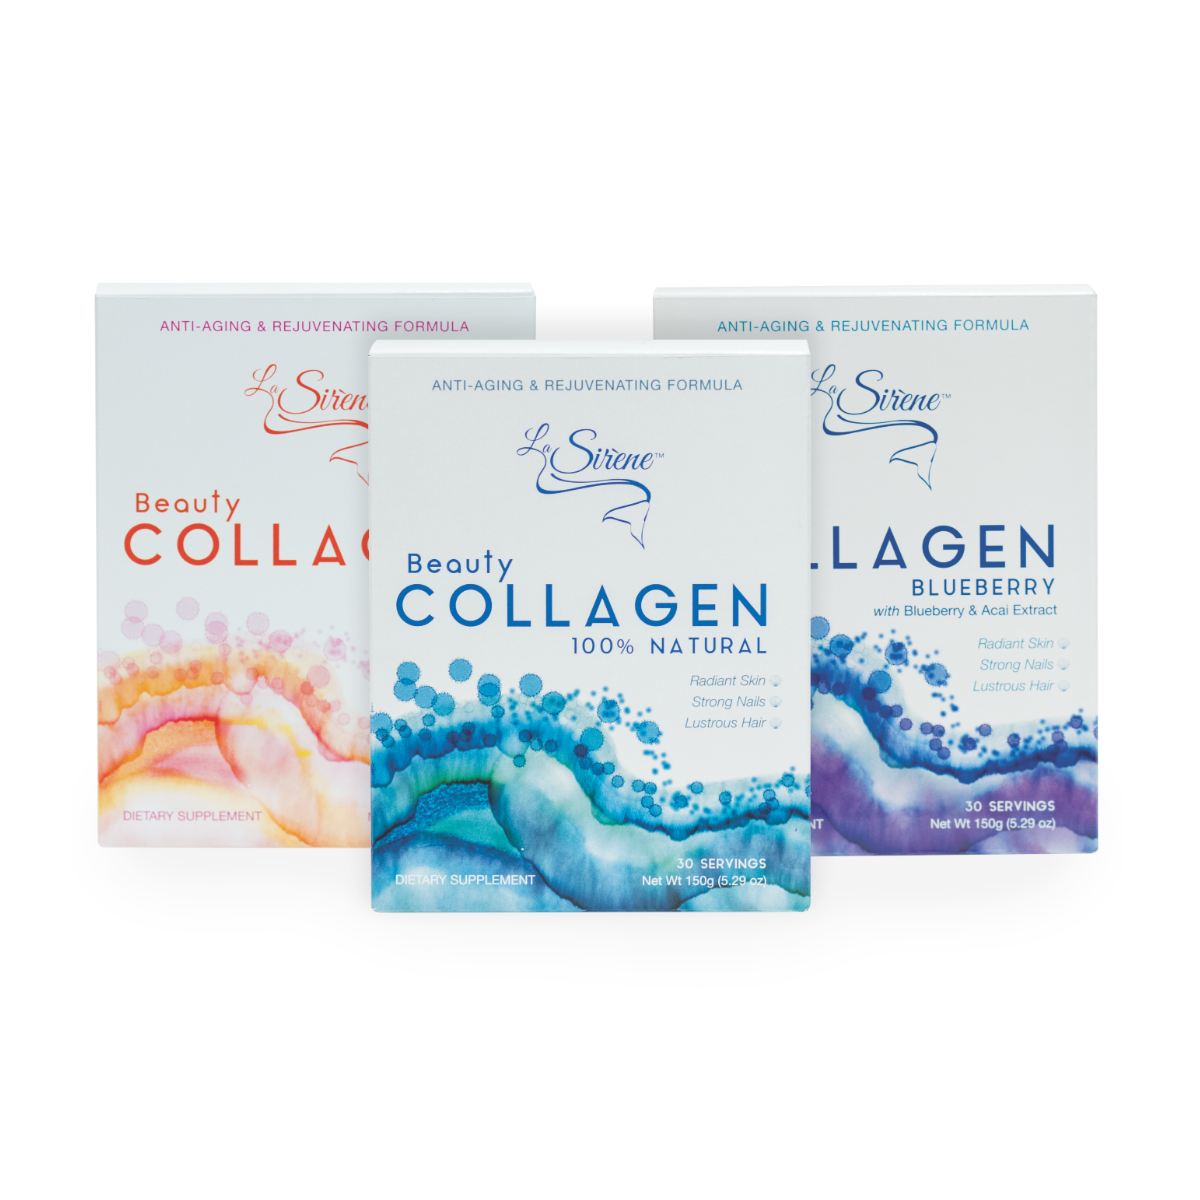 Treasure Collection - La Sirene Beauty Marine Collagen,